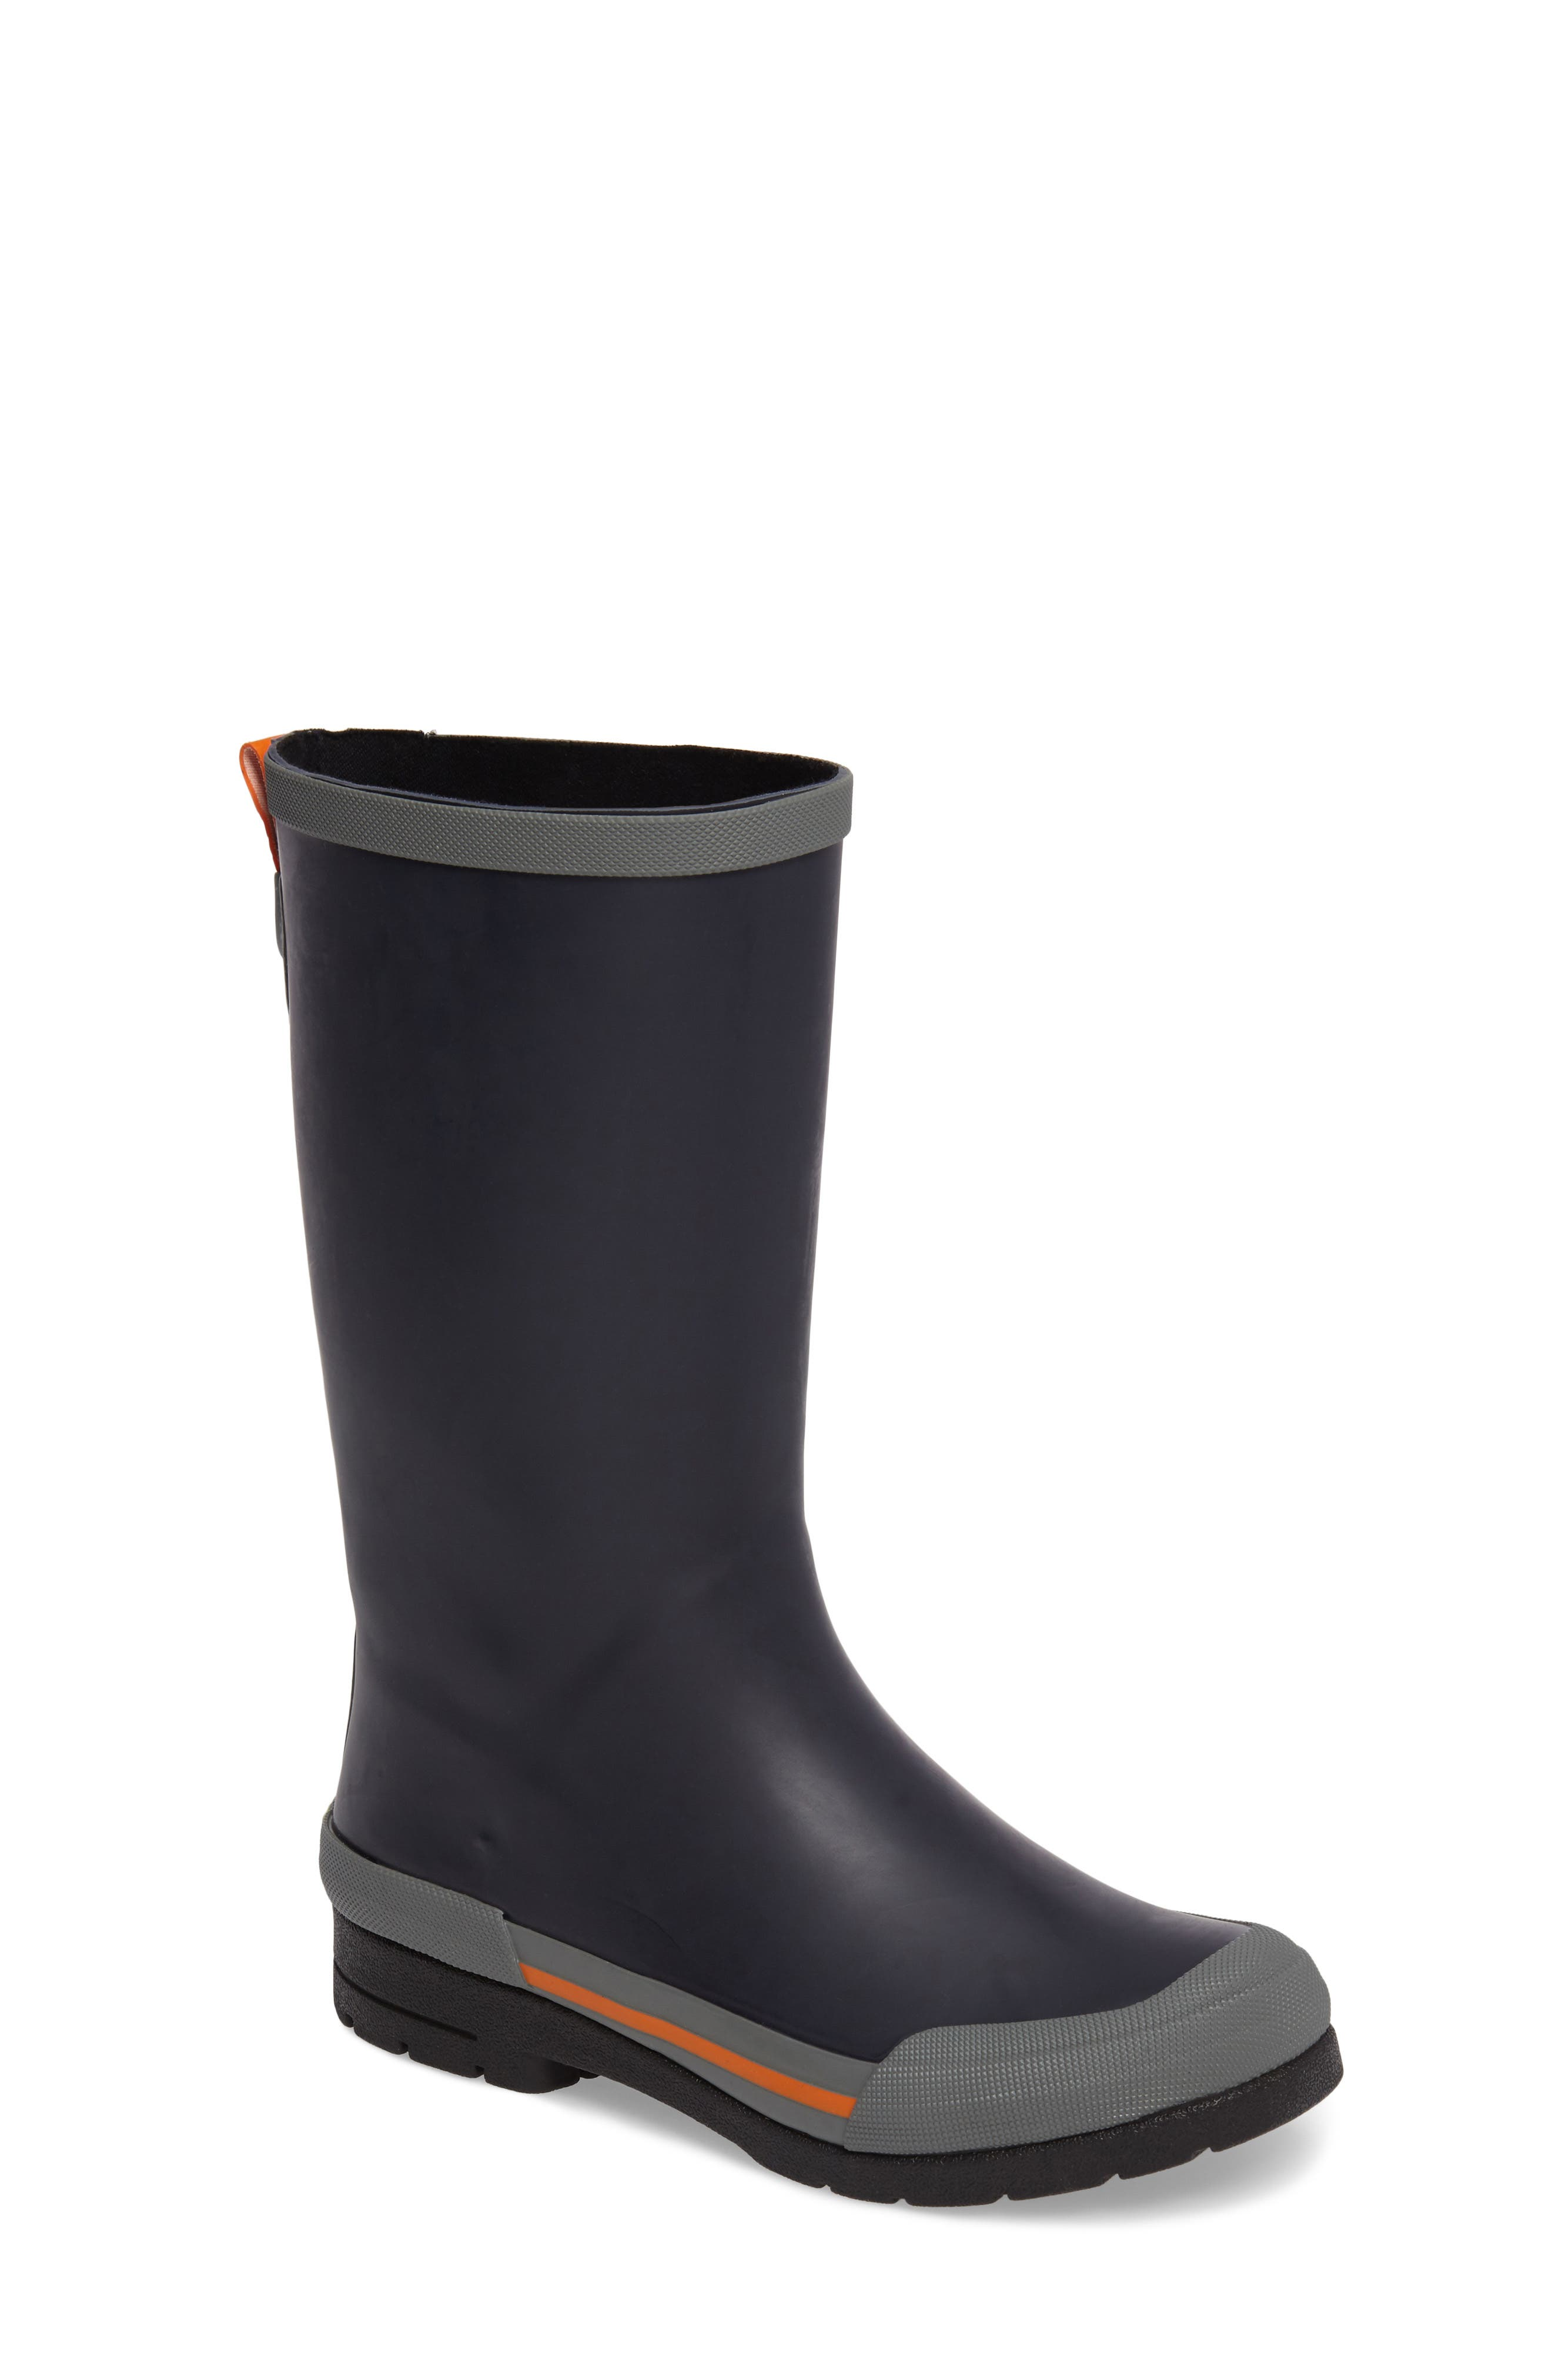 Alternate Image 1 Selected - Western Chief Classic EX Rain Boot (Toddler, Little Kid & Big Kid)